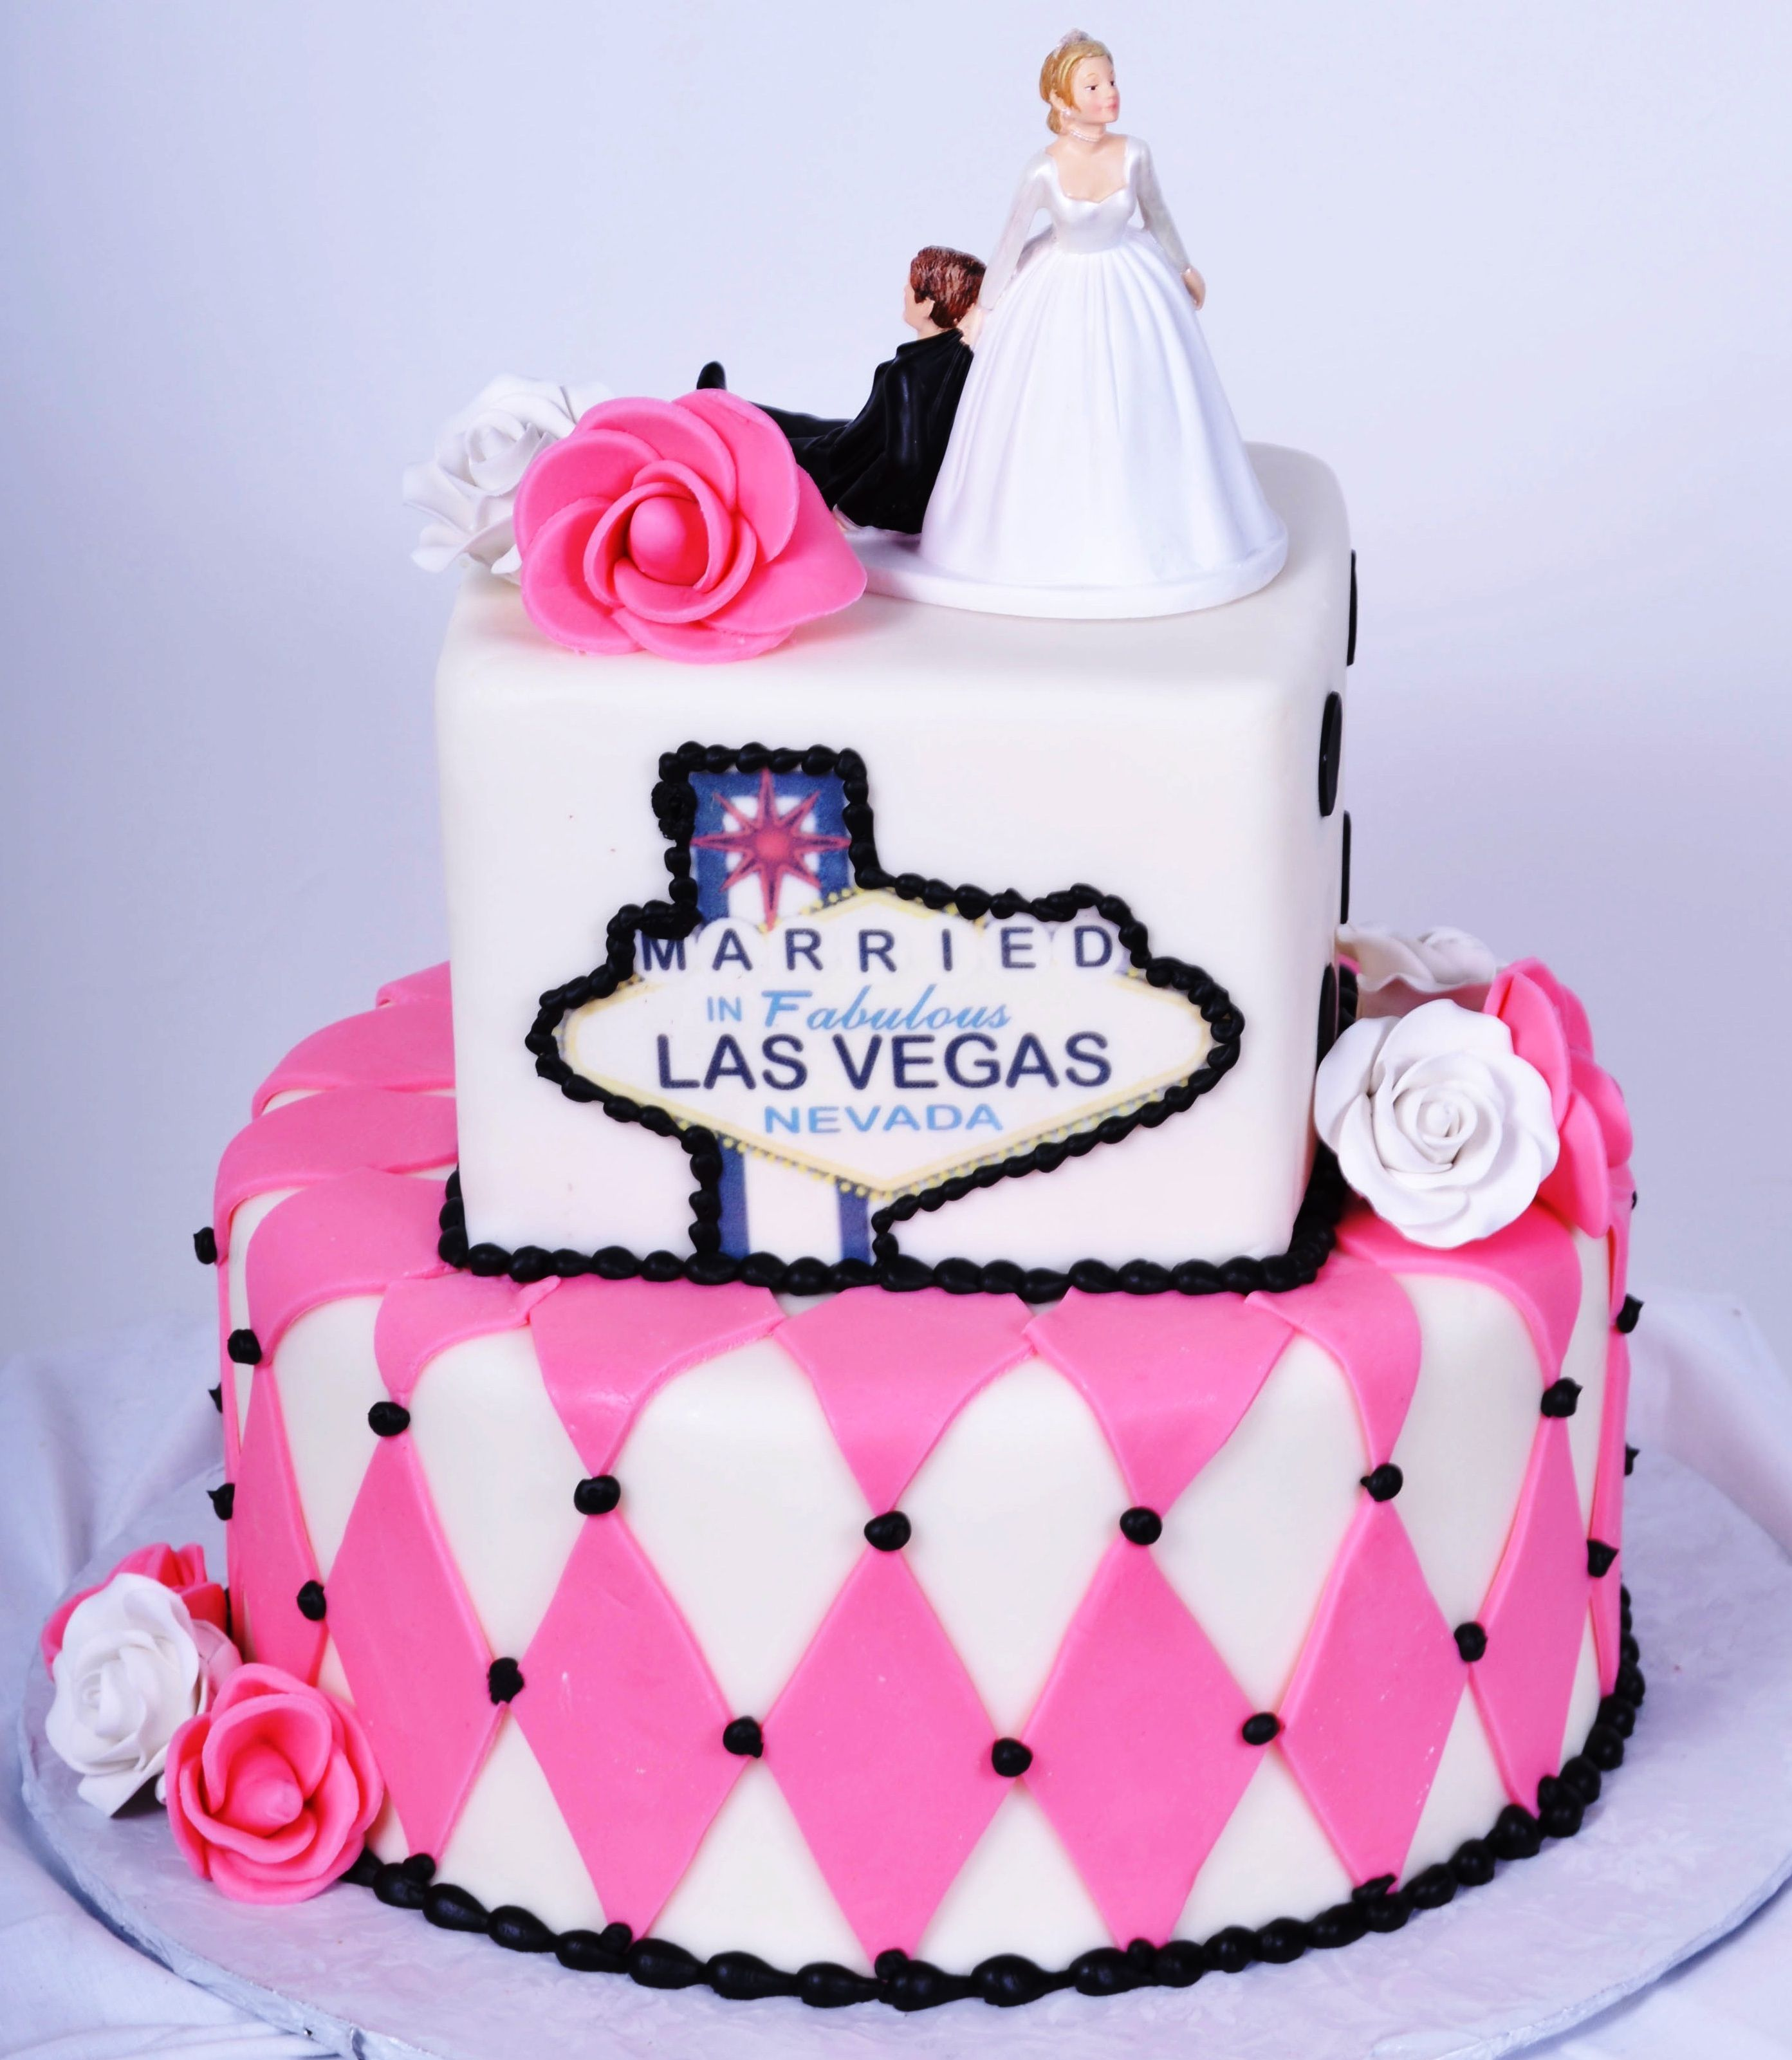 Pastry Palace Las Vegas - Wedding Cake #714 – Married in Fabulous ...